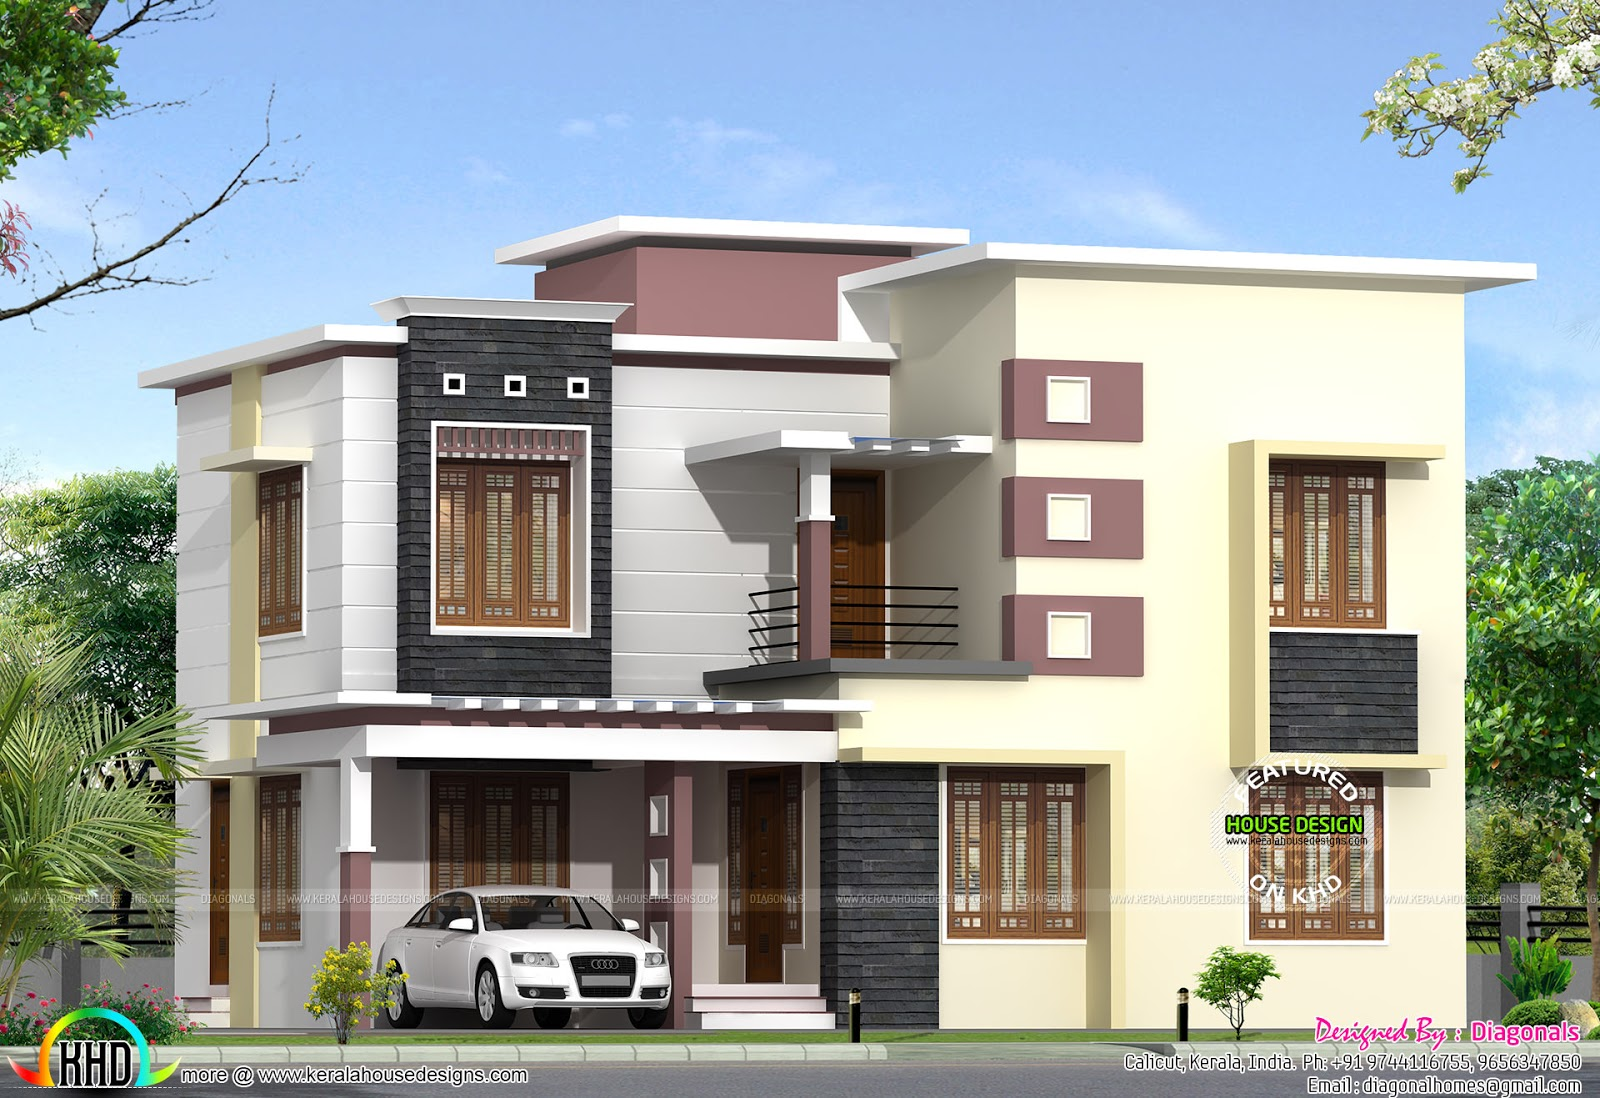 Modern box type 2068 sq ft home kerala home design for Modern box type house design